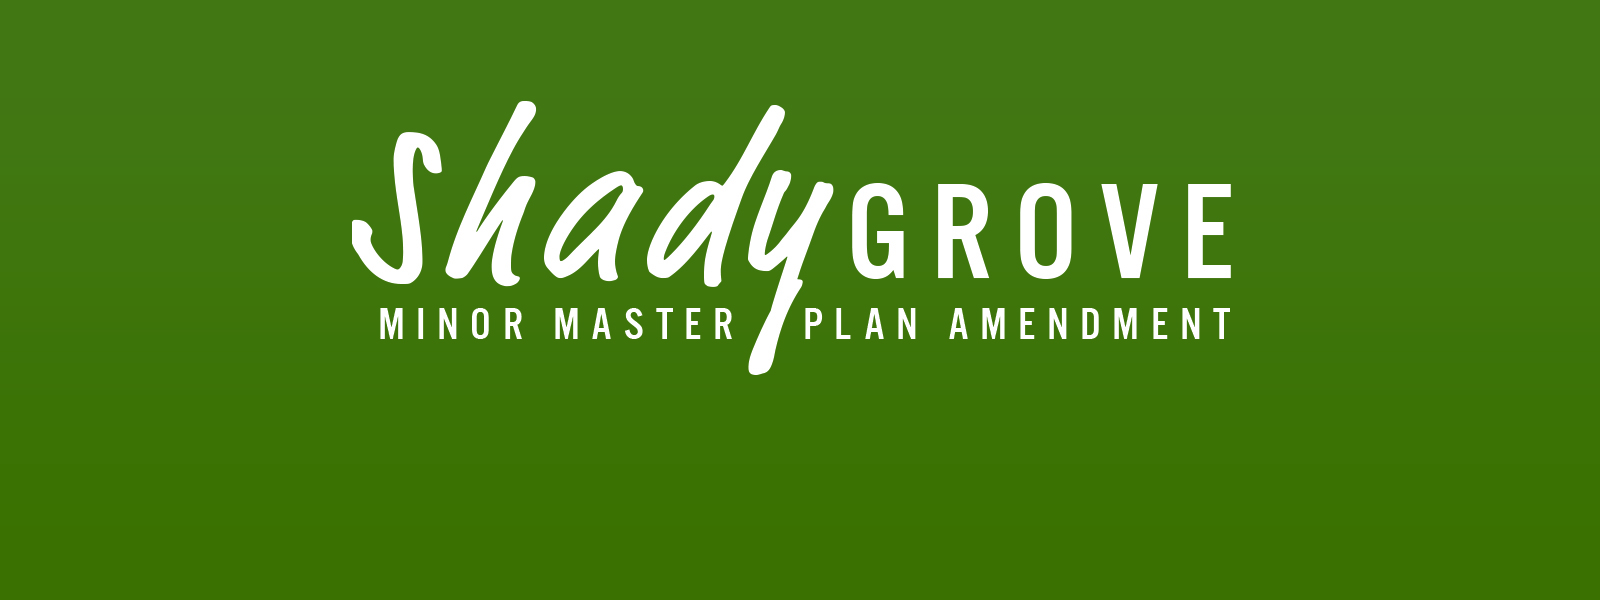 shady grove minor master plan amendment